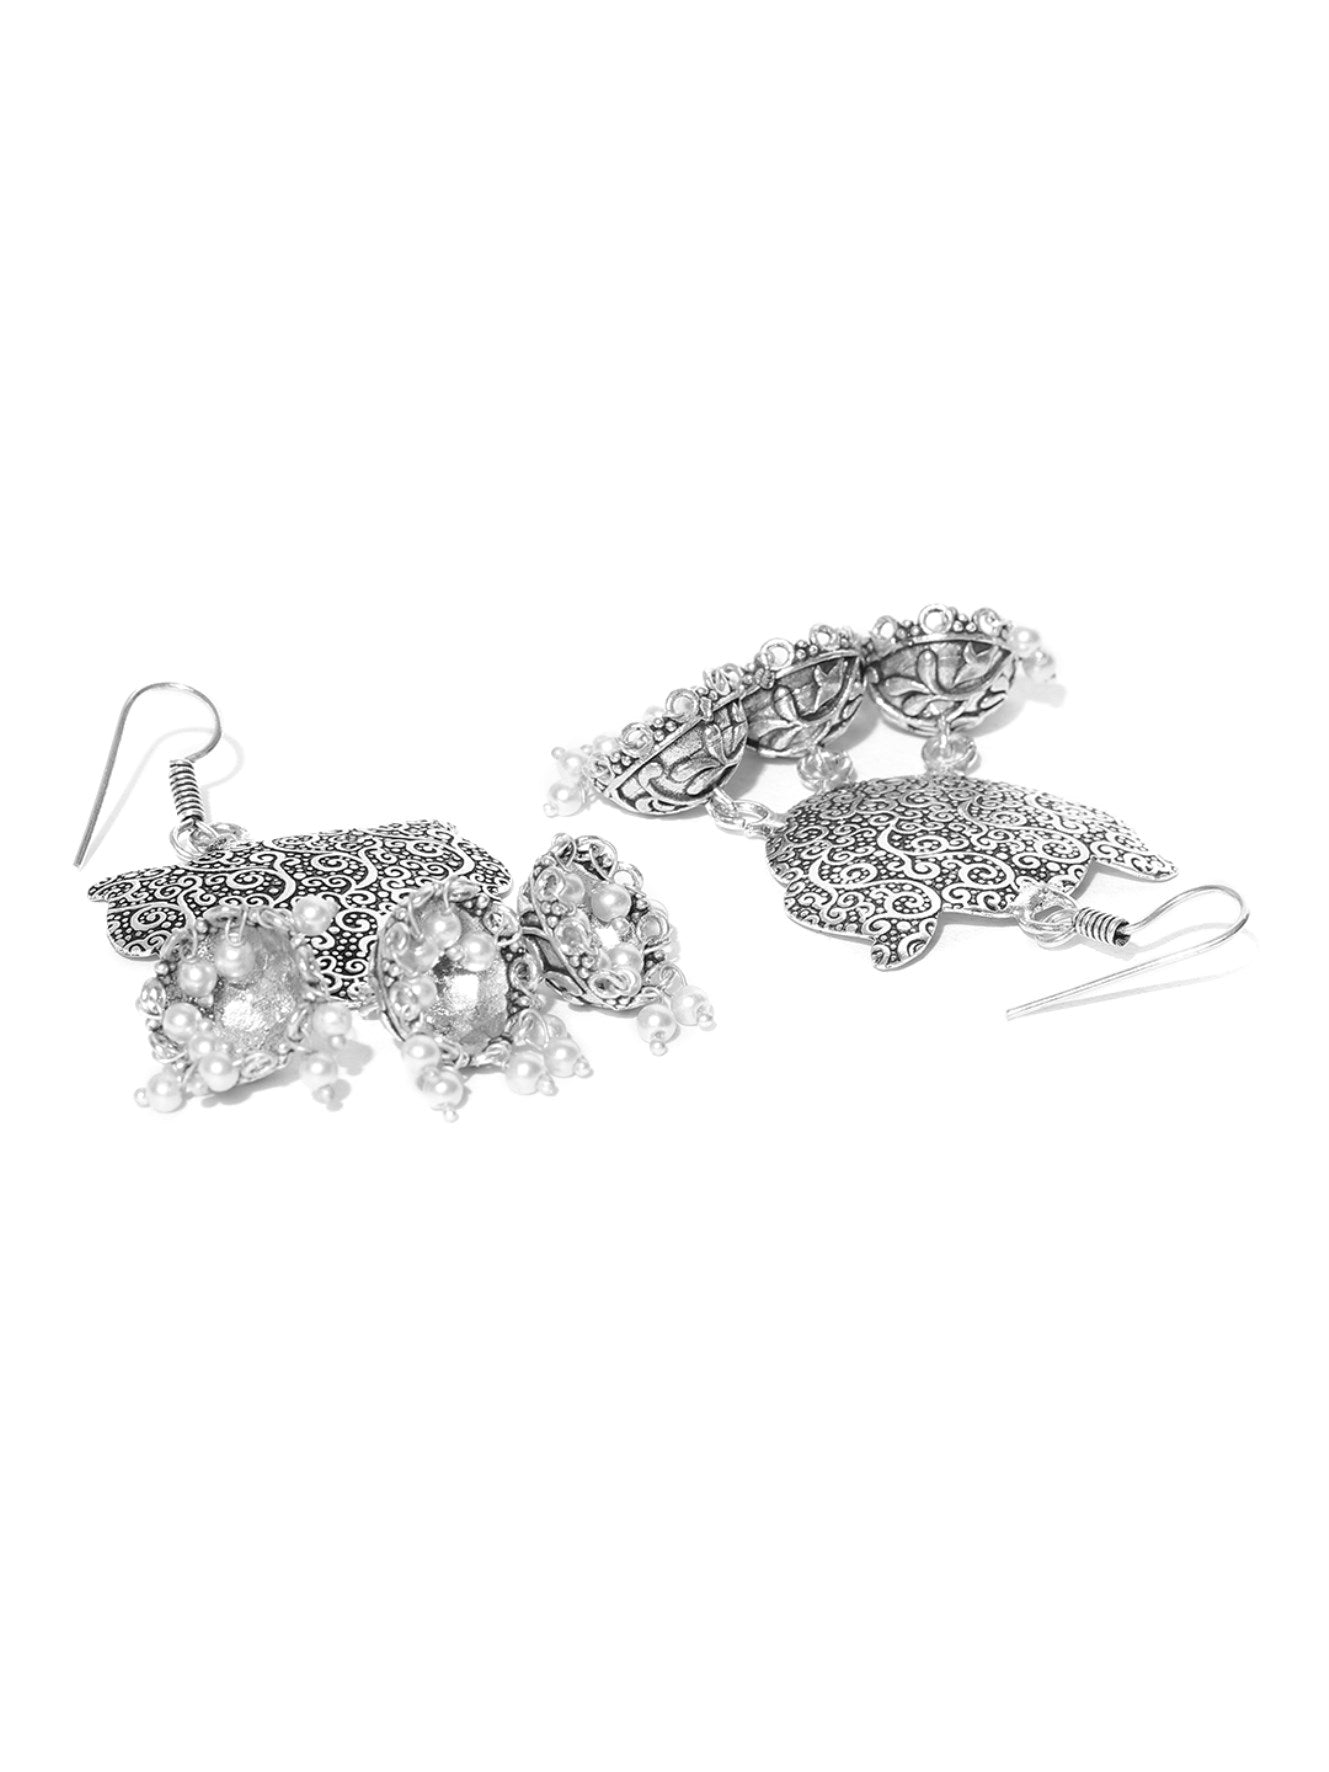 Floral Shaped Silver Tone American Diamond Earring With Pearl Drop For Women And Girls